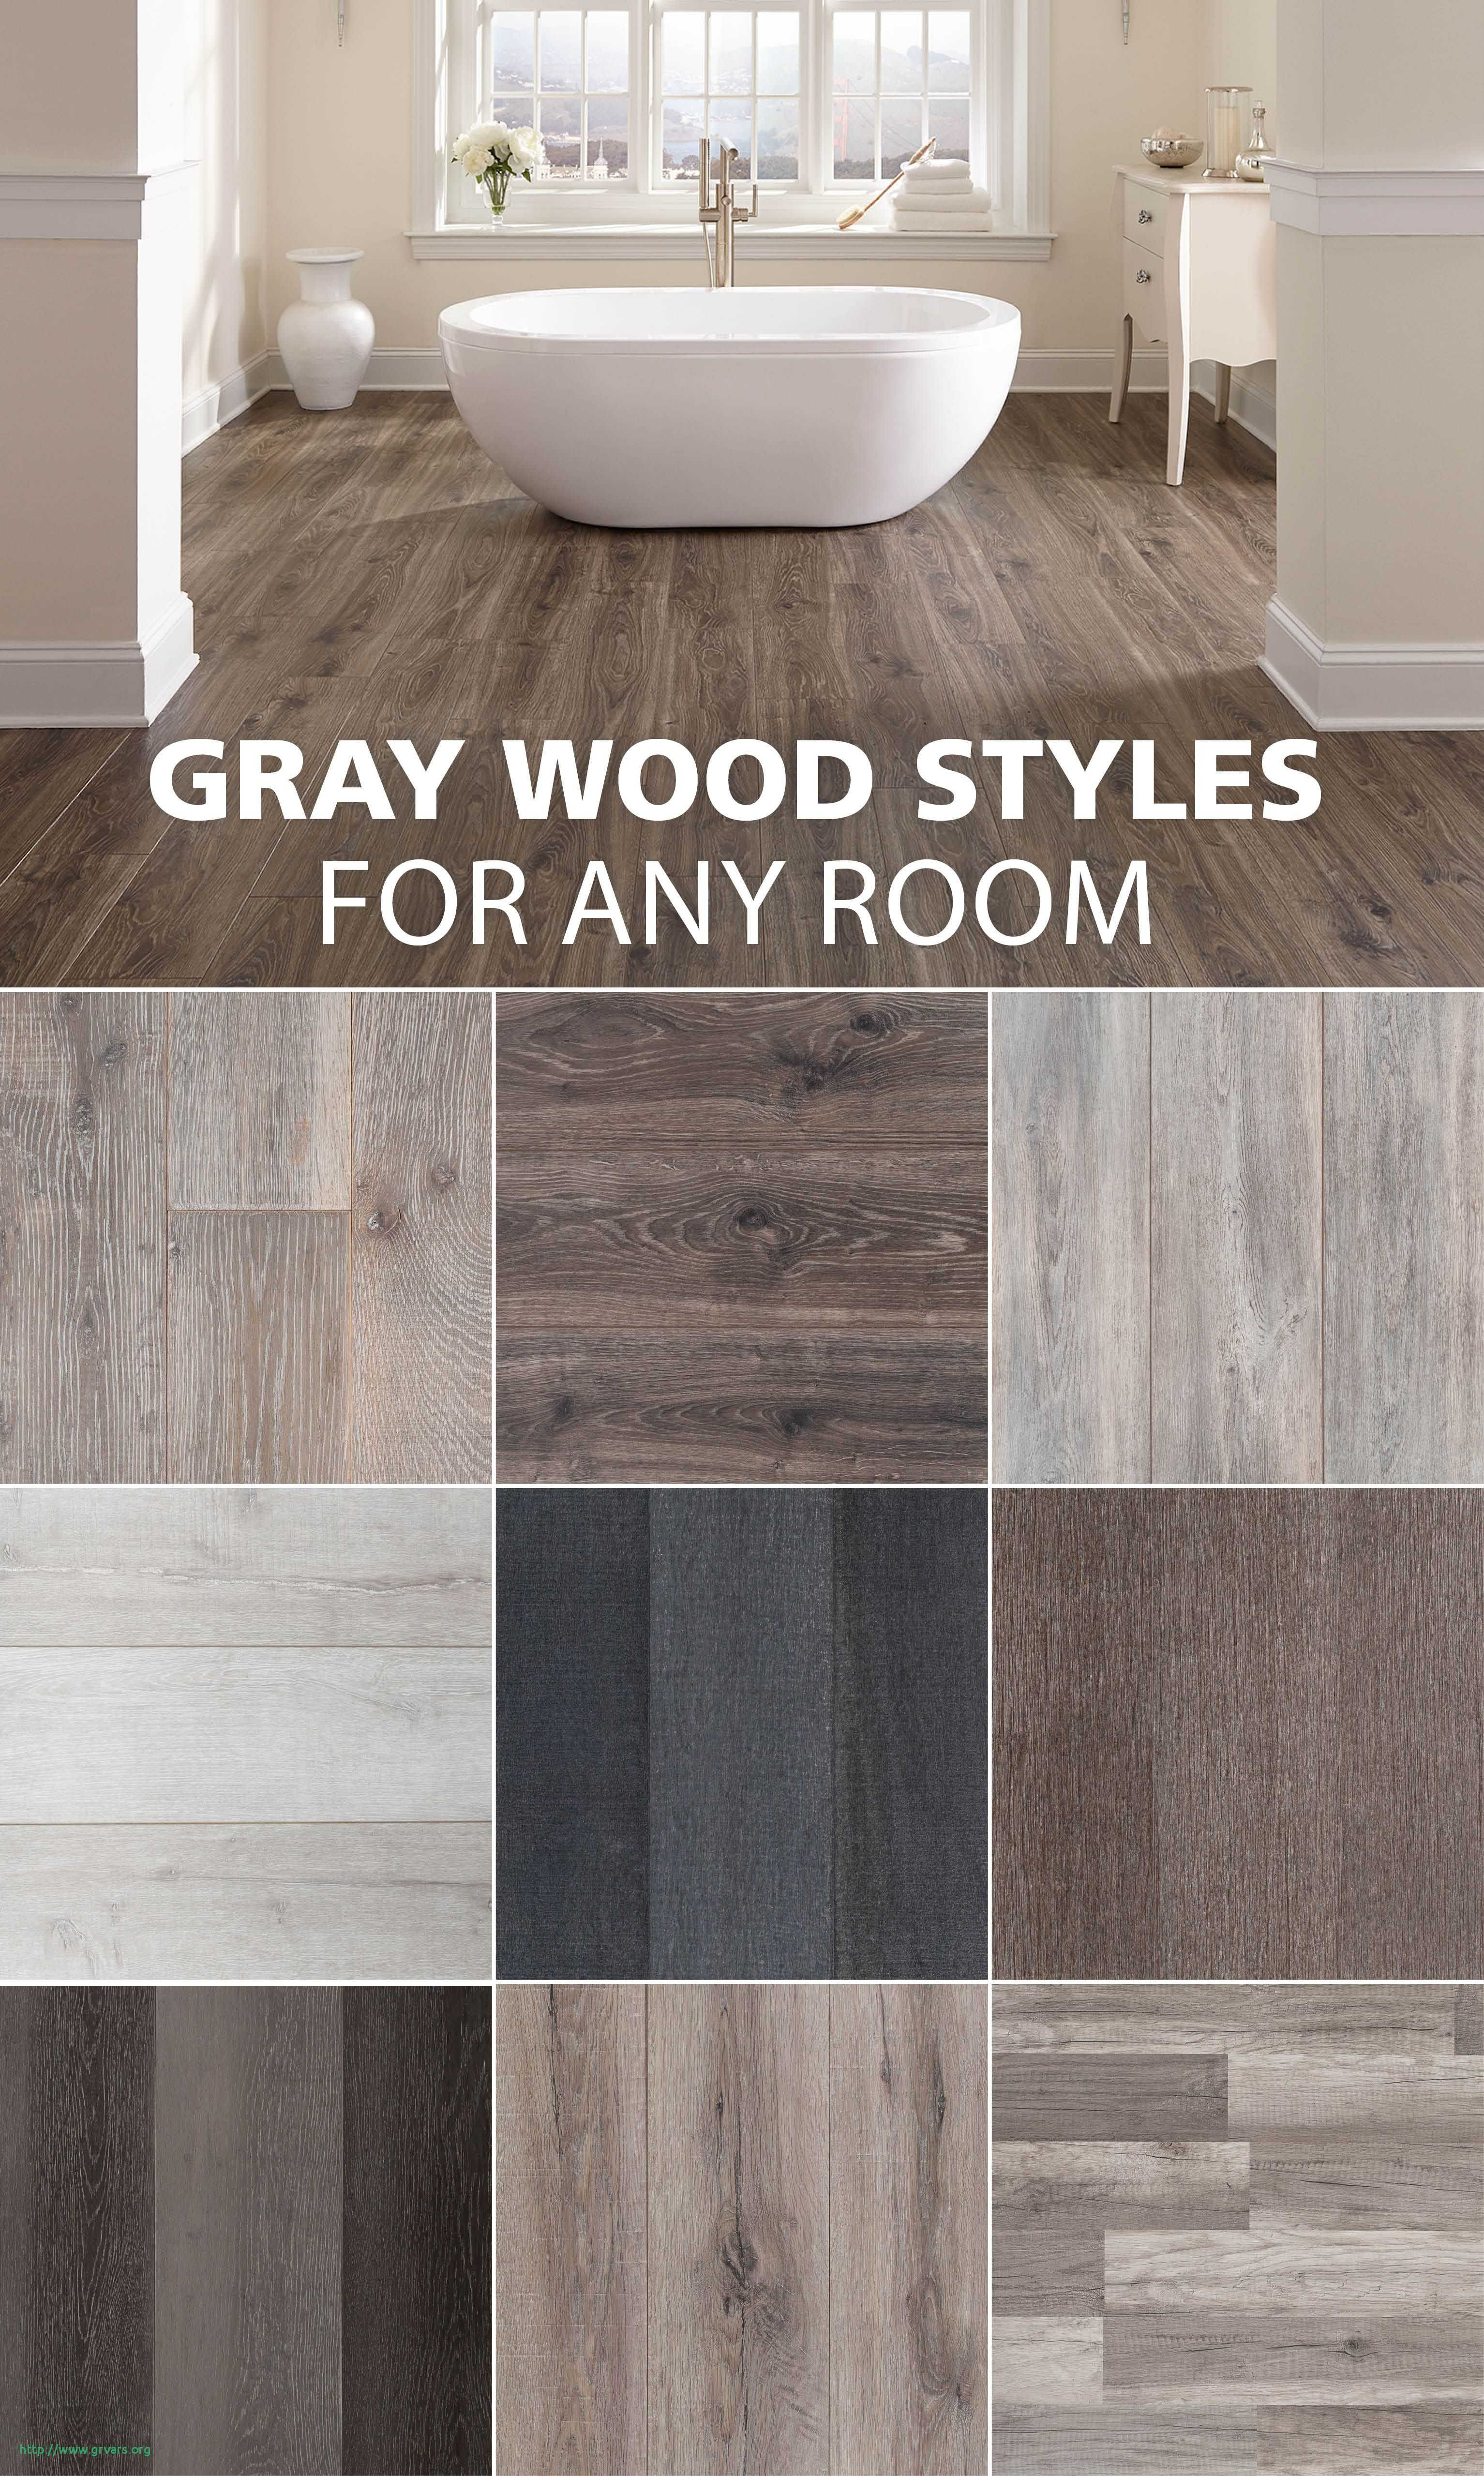 hardwood floor threshold reducer of most affordable hardwood floors unique here are some of our favorite in most affordable hardwood floors unique here are some of our favorite gray wood look styles